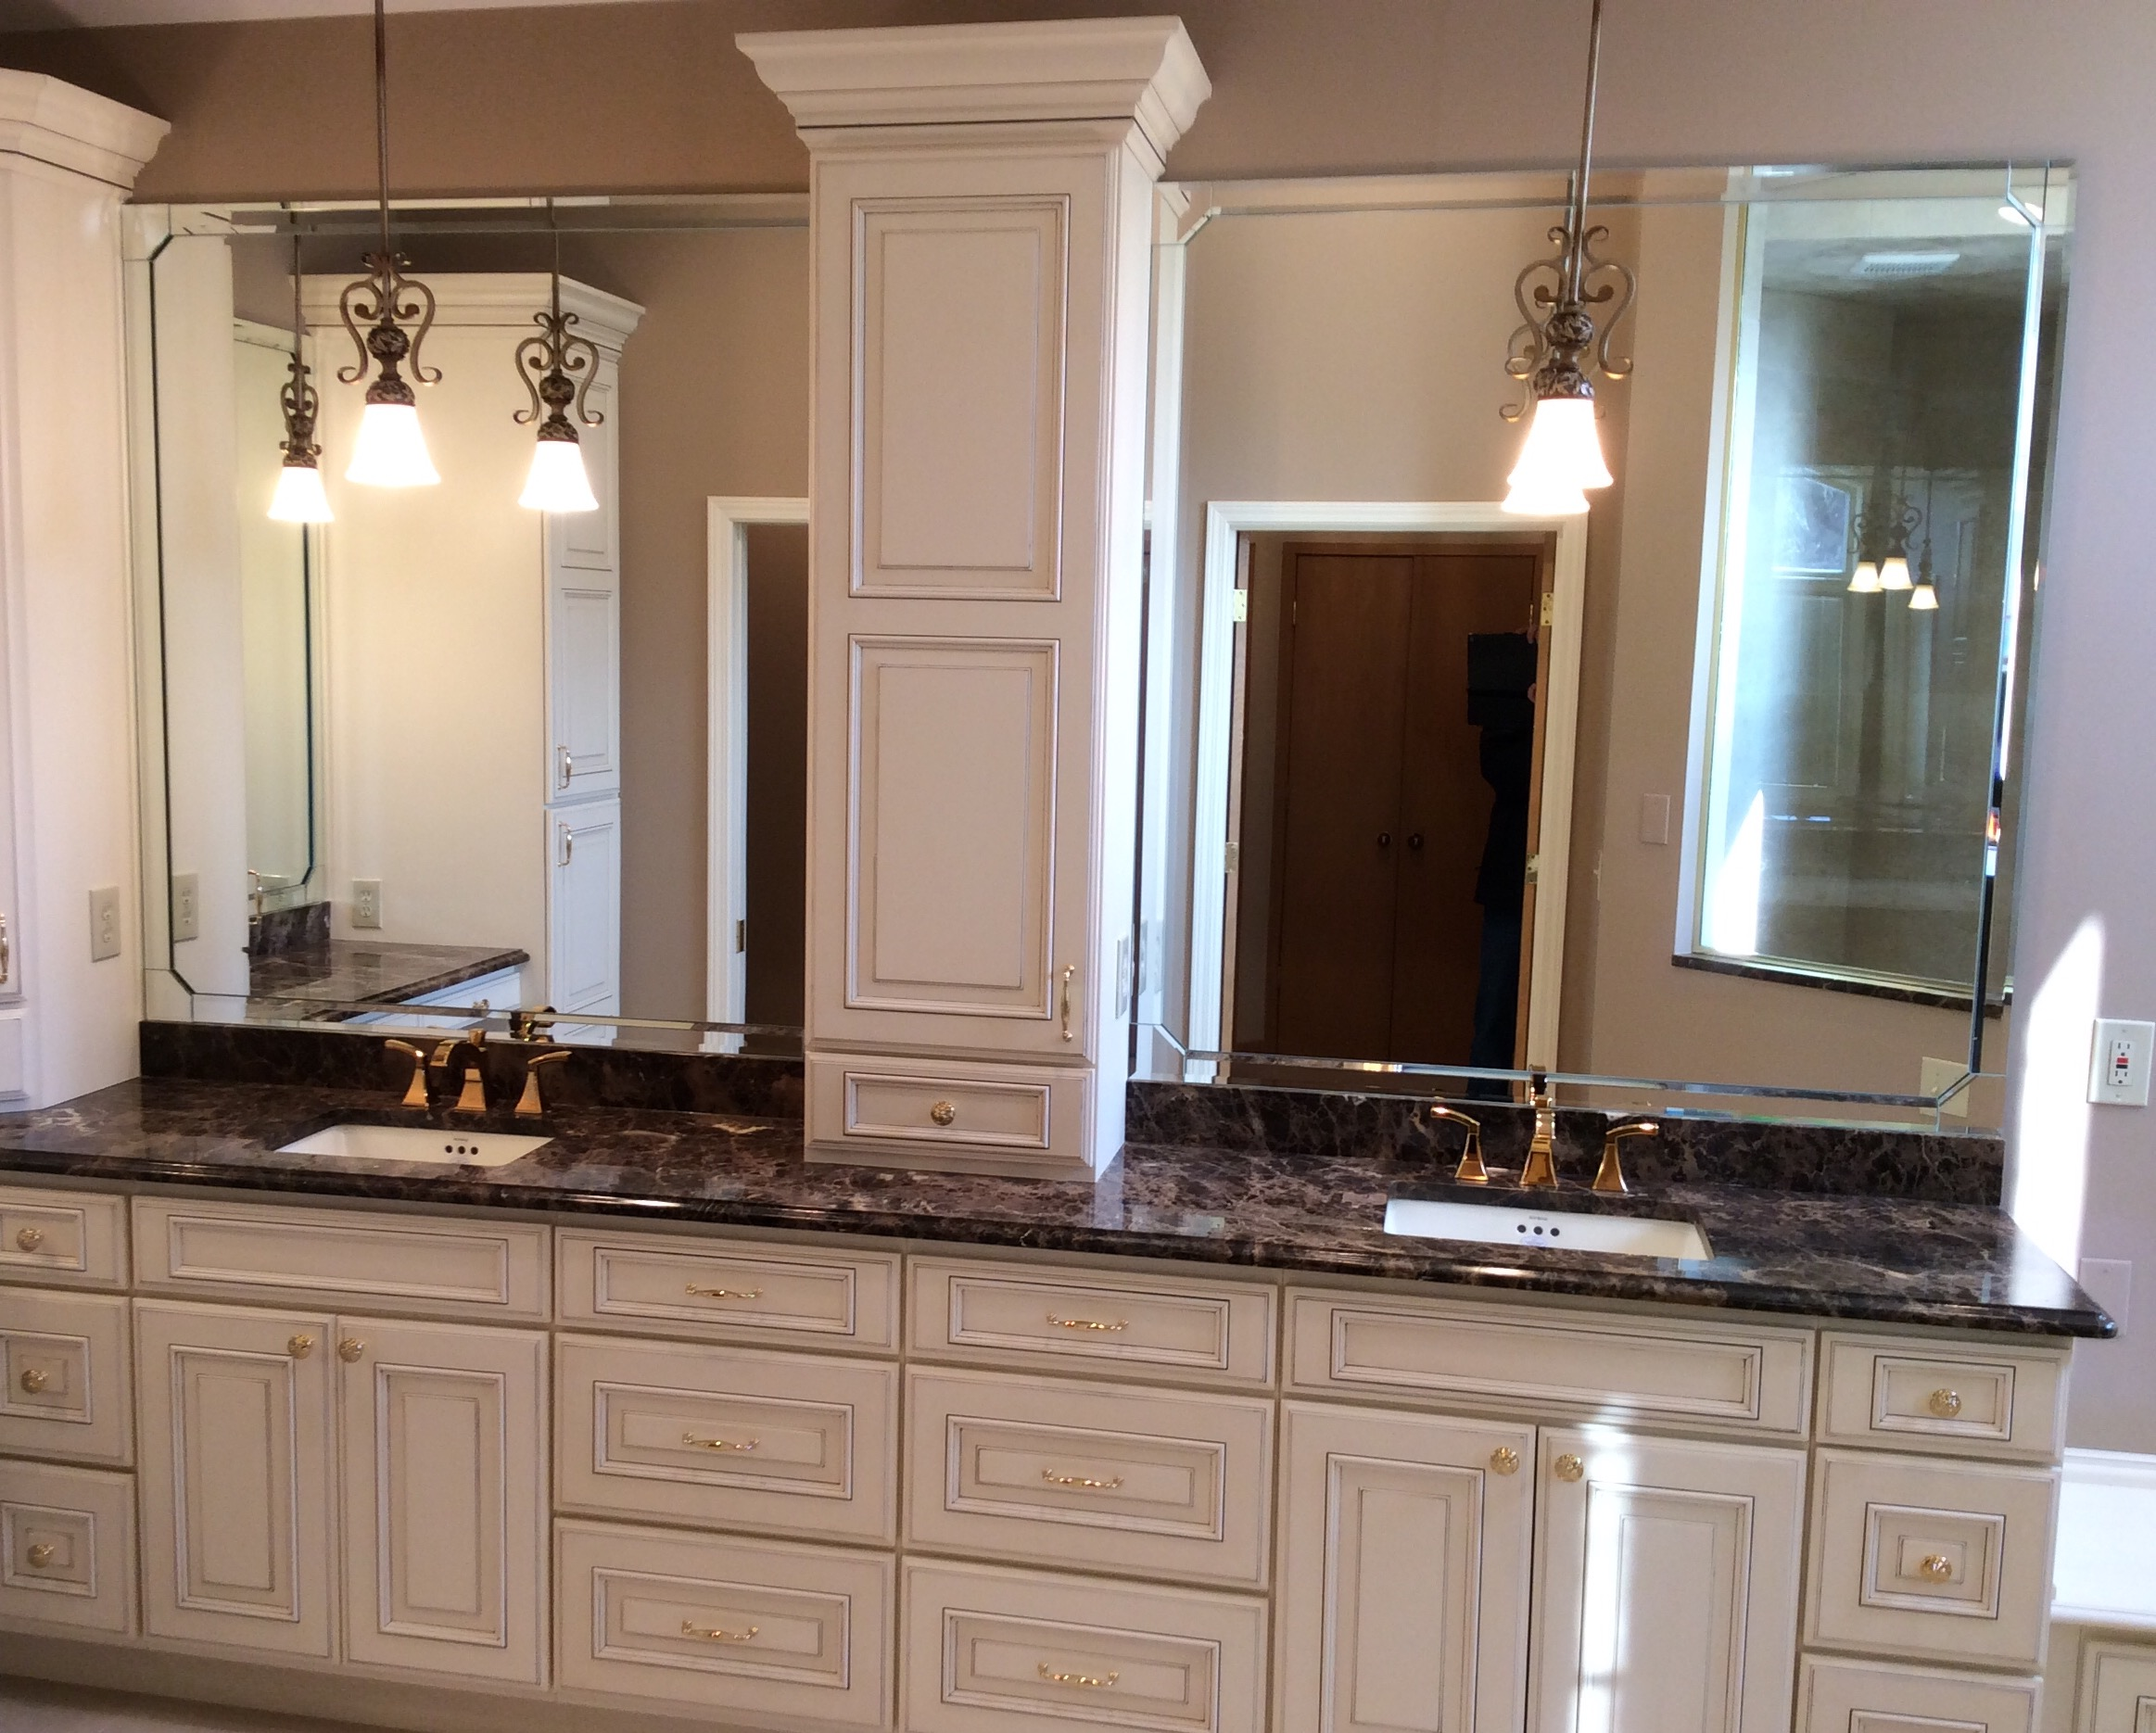 Granite Countertop Gallery St. Louis on Dark Granite Countertops With Dark Cabinets  id=58601